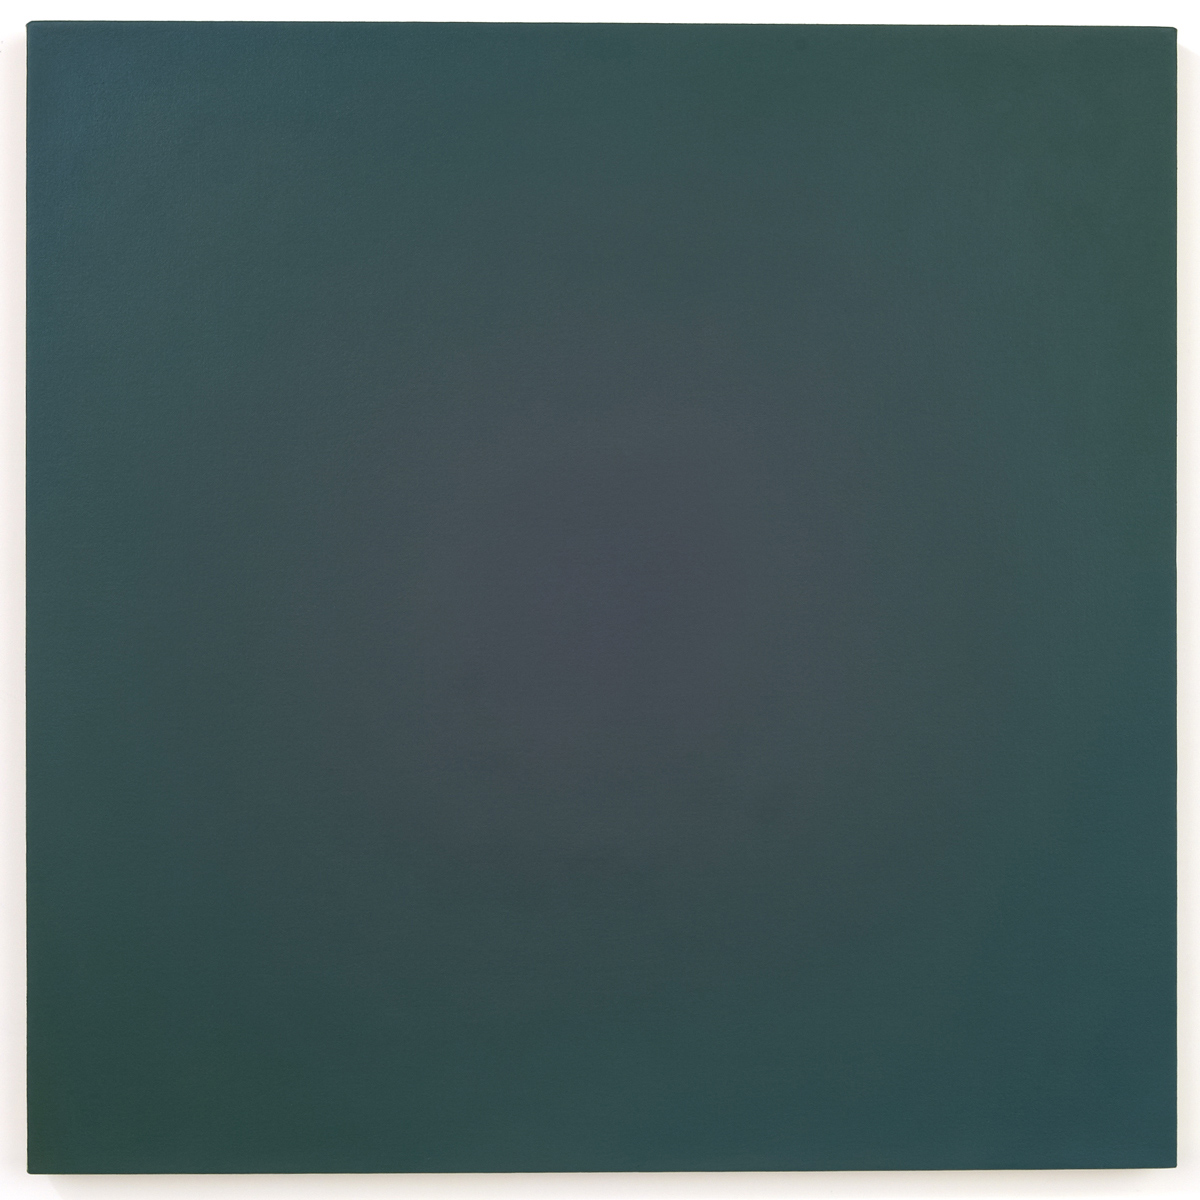 Night Shades (Red Green), Chance Rays Series, 1995, oil on canvas, 28 x 28 in. (71 x 71 cm.)